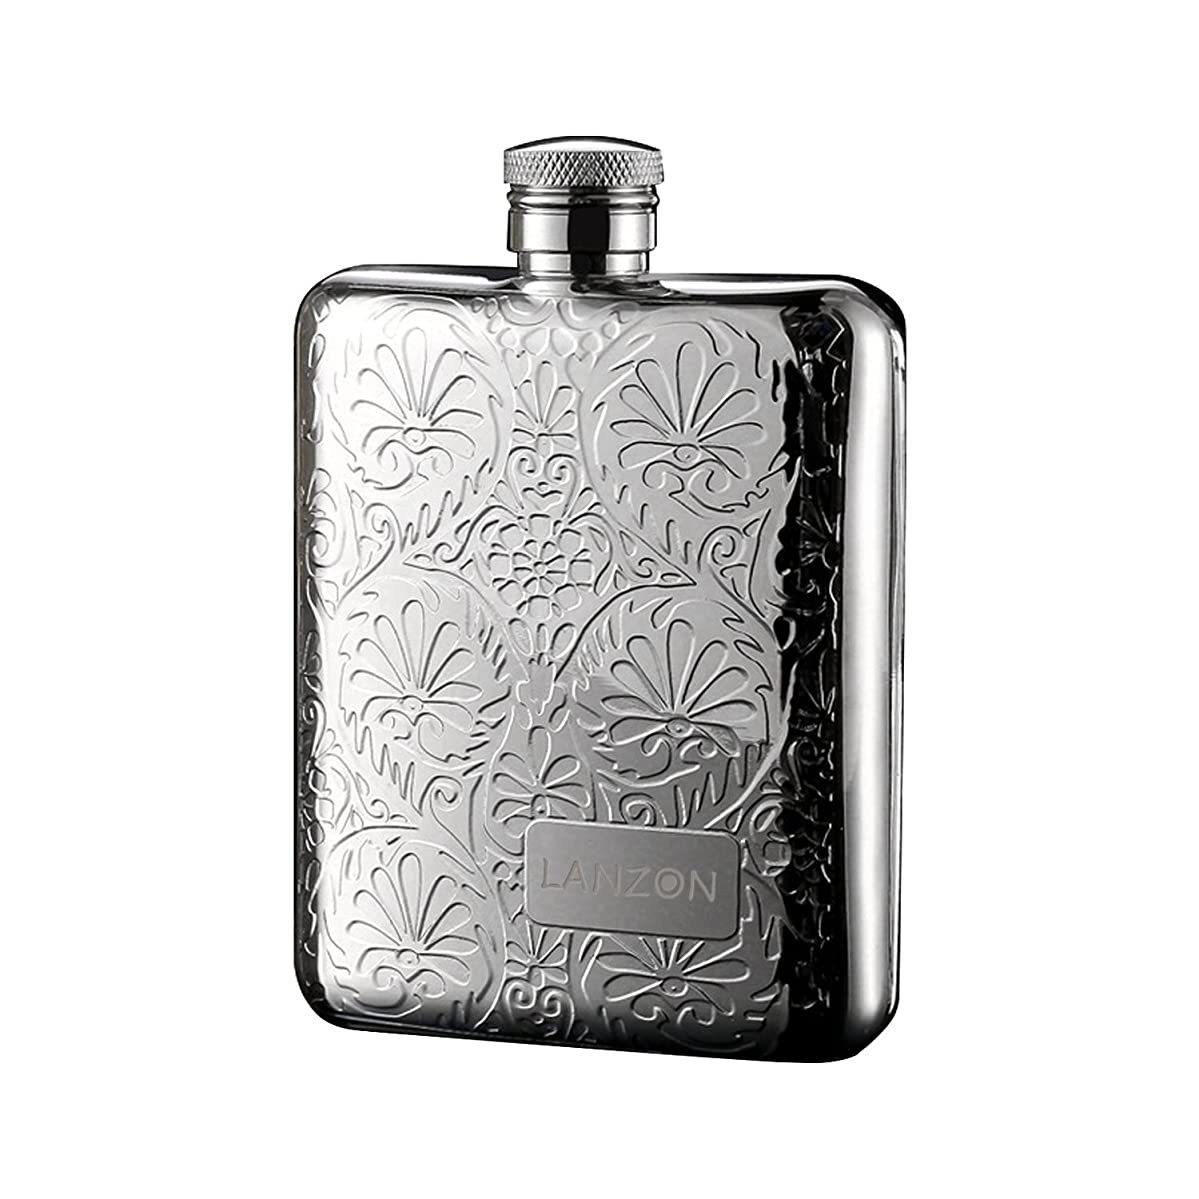 LANZON Hip Flask with Funnel, All 18/8 304 Food Grade Stainless Steel Curved Pocket Flask for Liquor | 6 OZ Capacity | Gift Boxed (Flower Pattern)